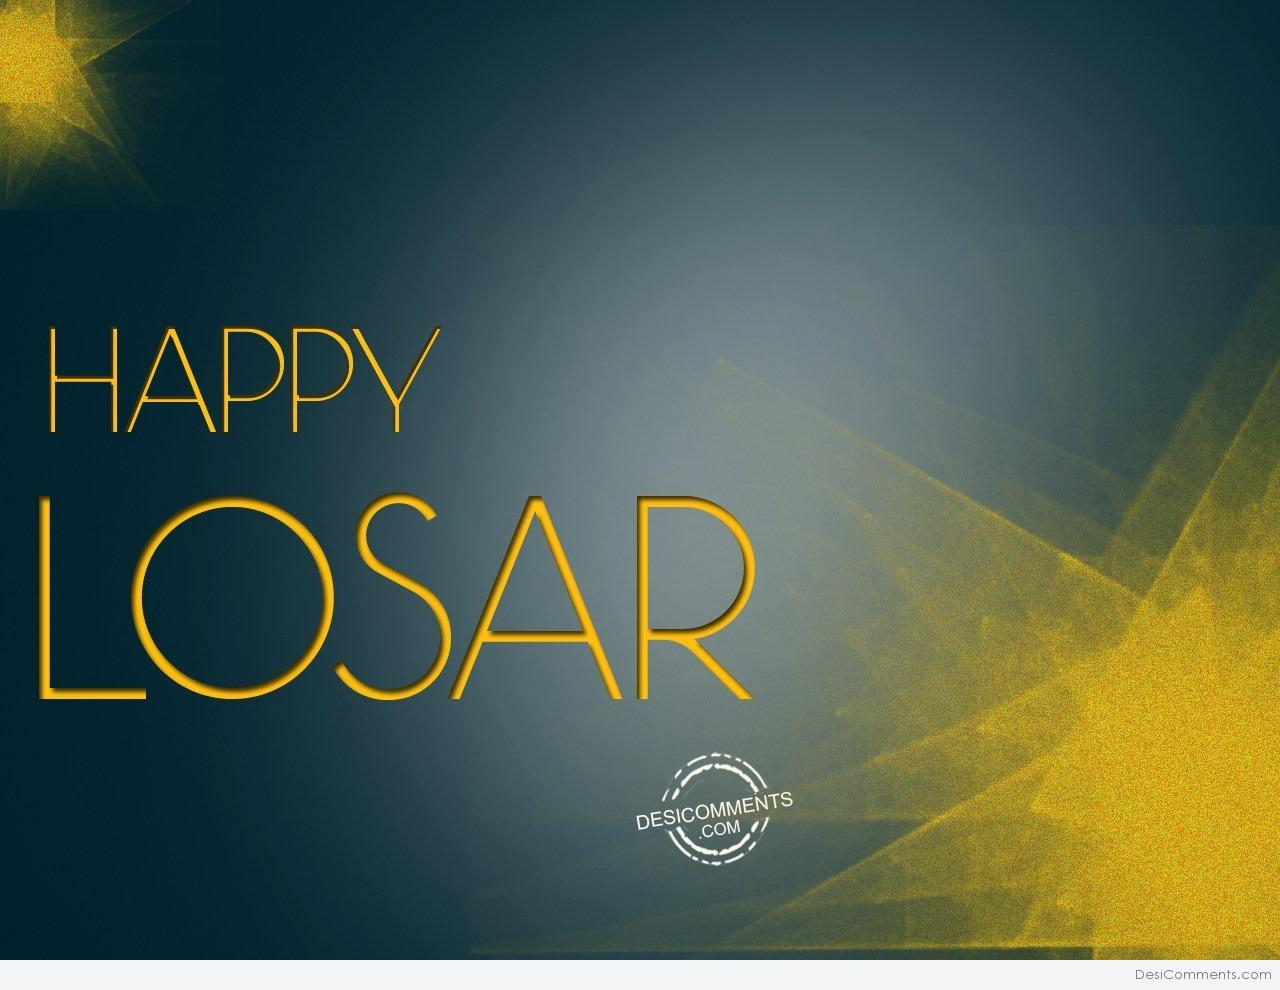 Happy Losar Pictures And Images